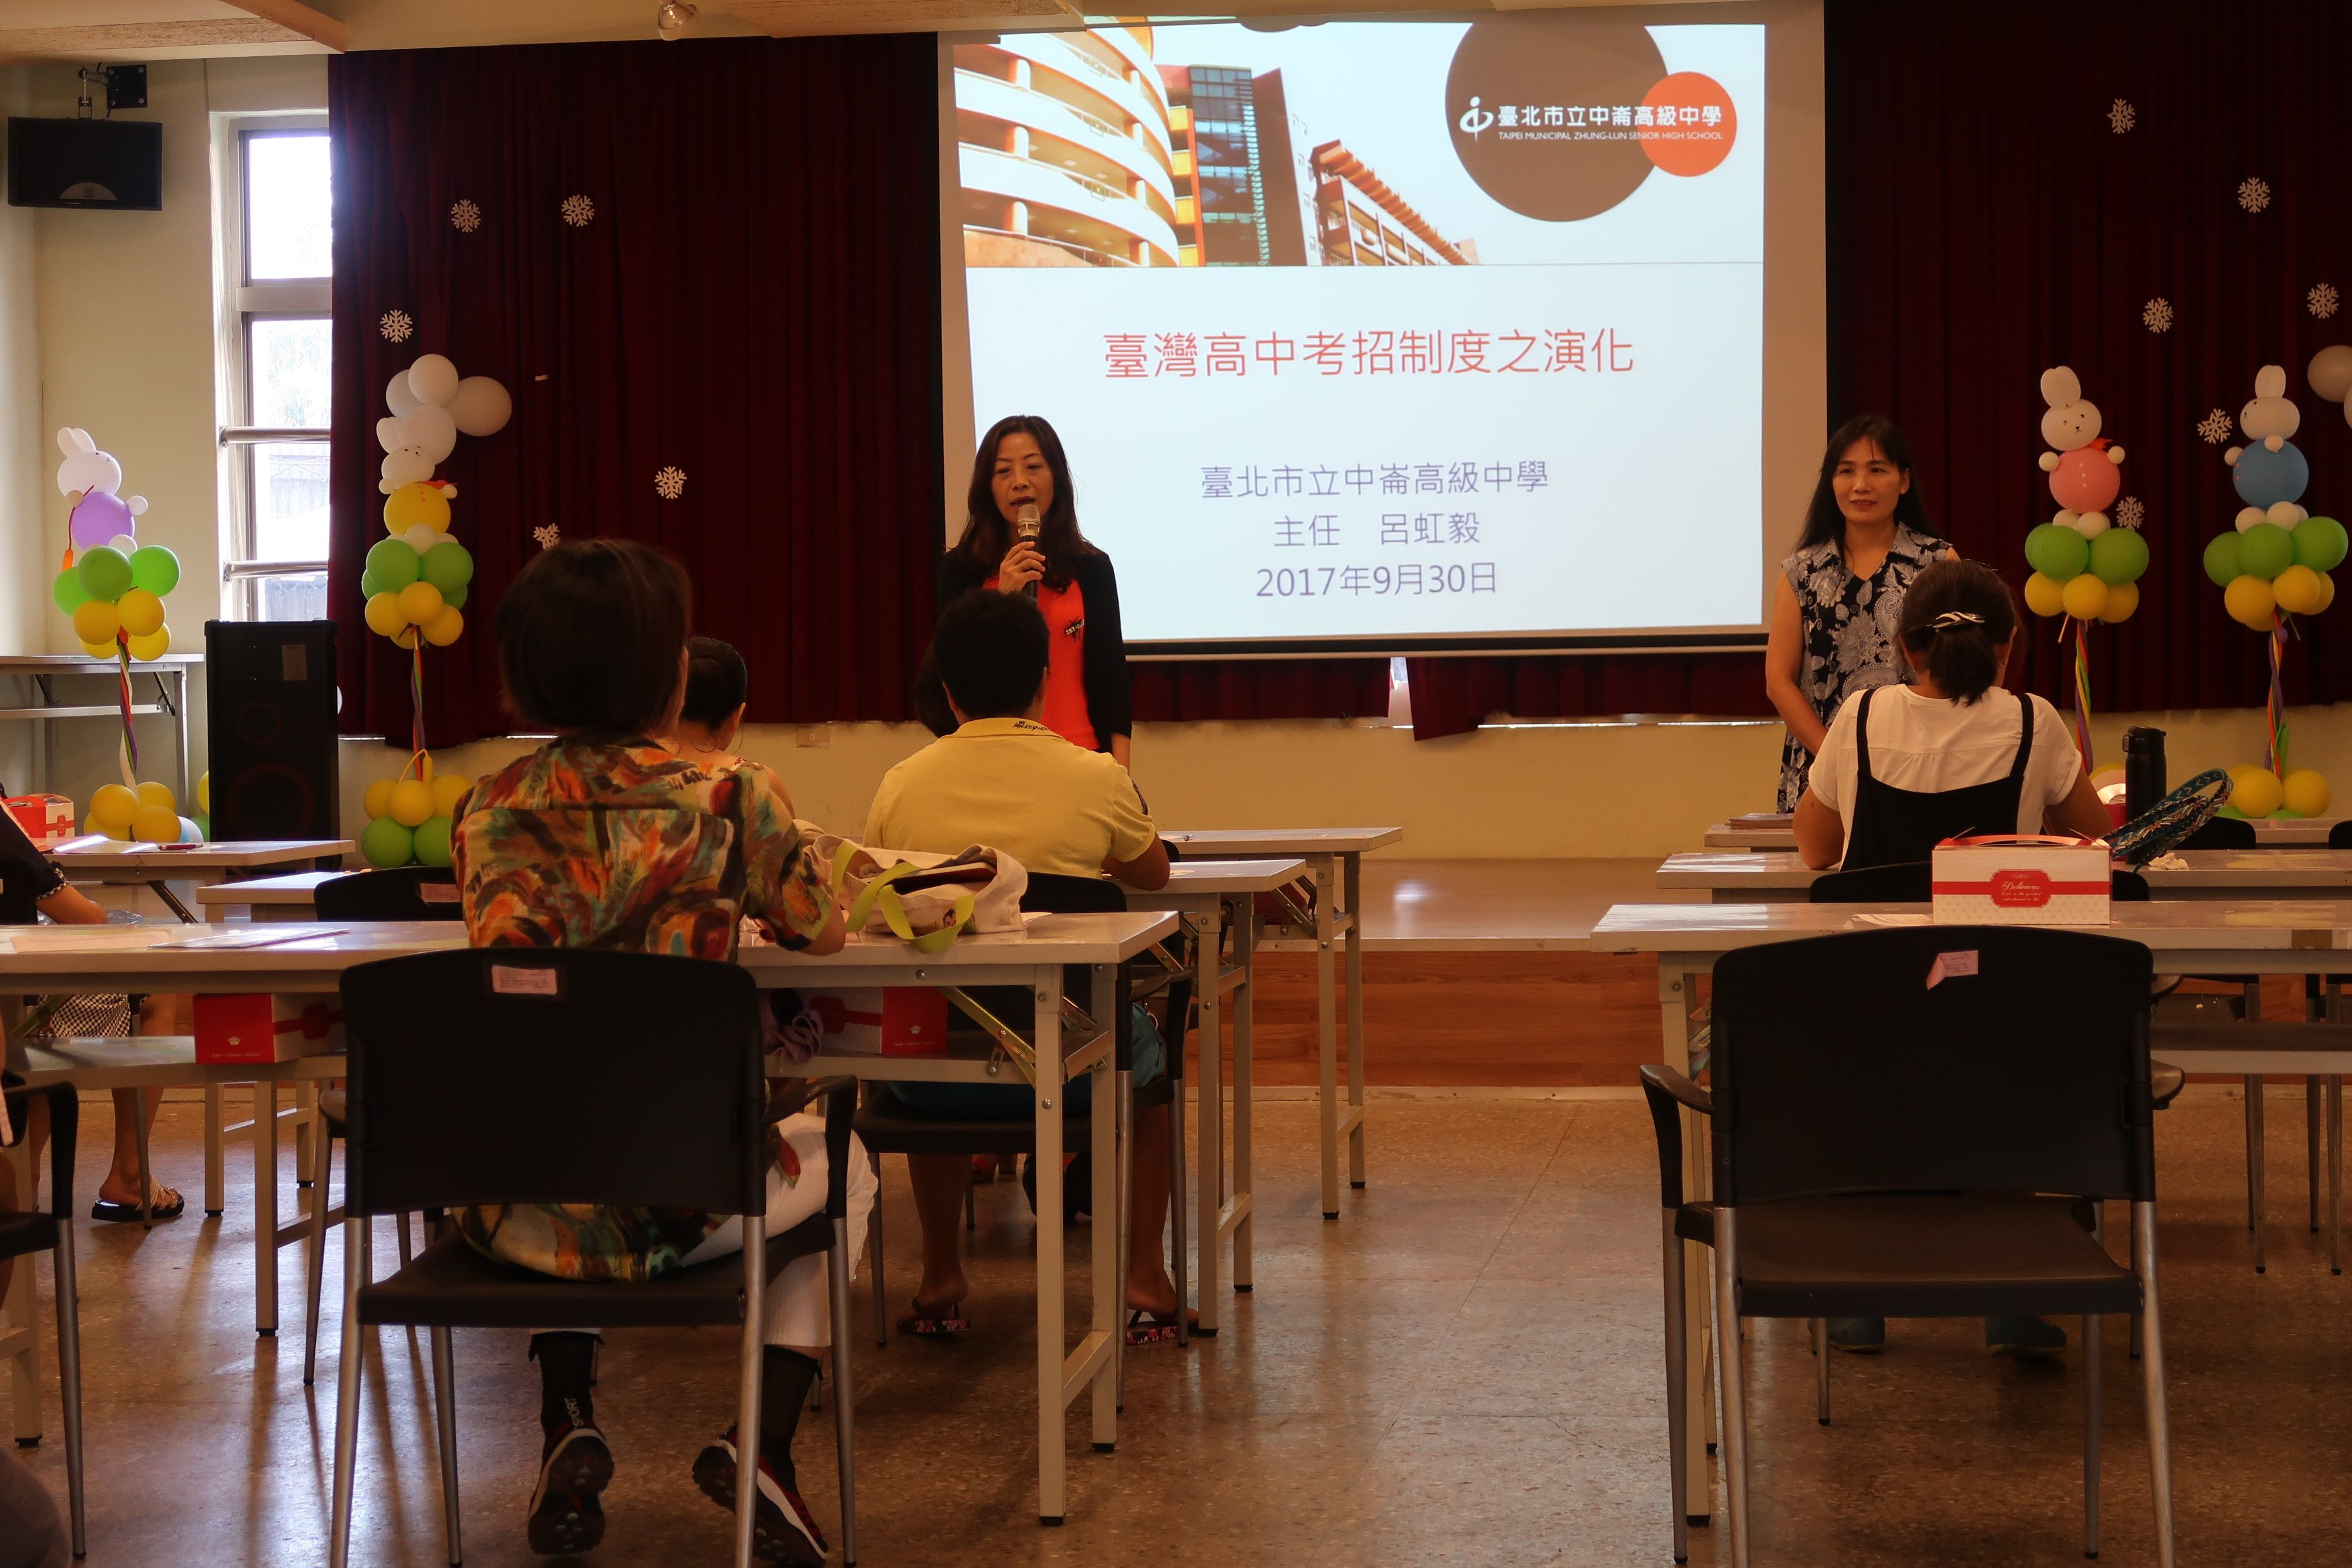 Taipei Department of Education explaining the focus of the meeting.